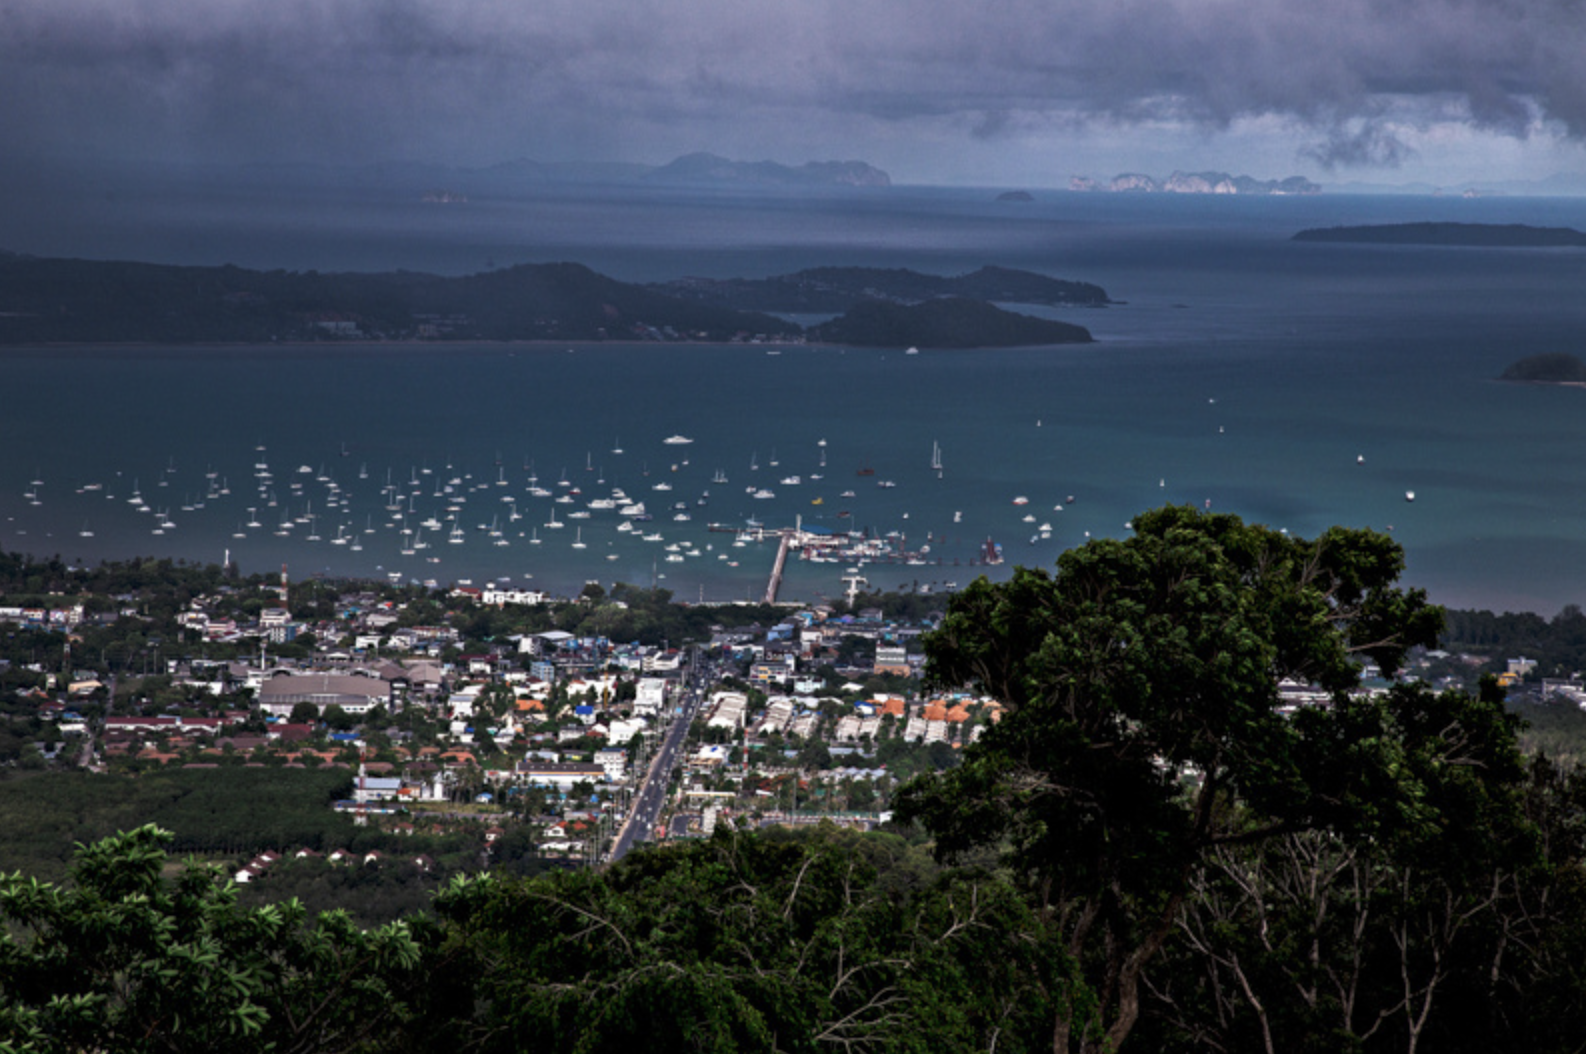 Looking out towards Chalong Pier on the southern part of Phuket.